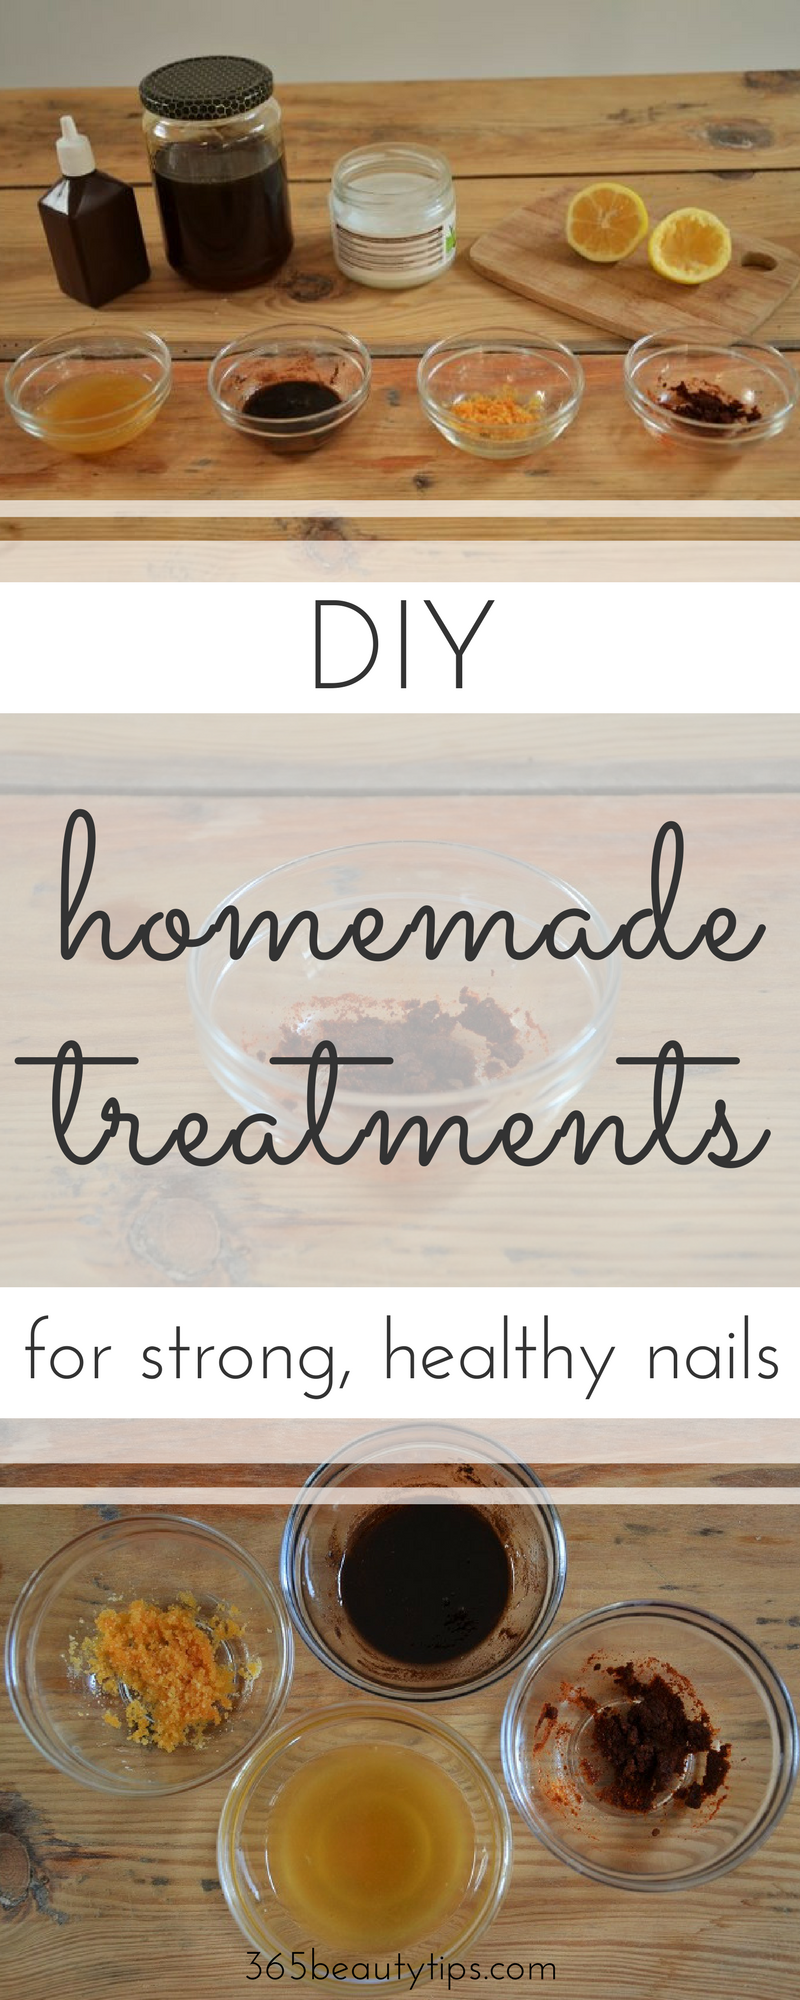 DIY-homemade-treatments-for-strong-healthy-nails-365-beauty-tips